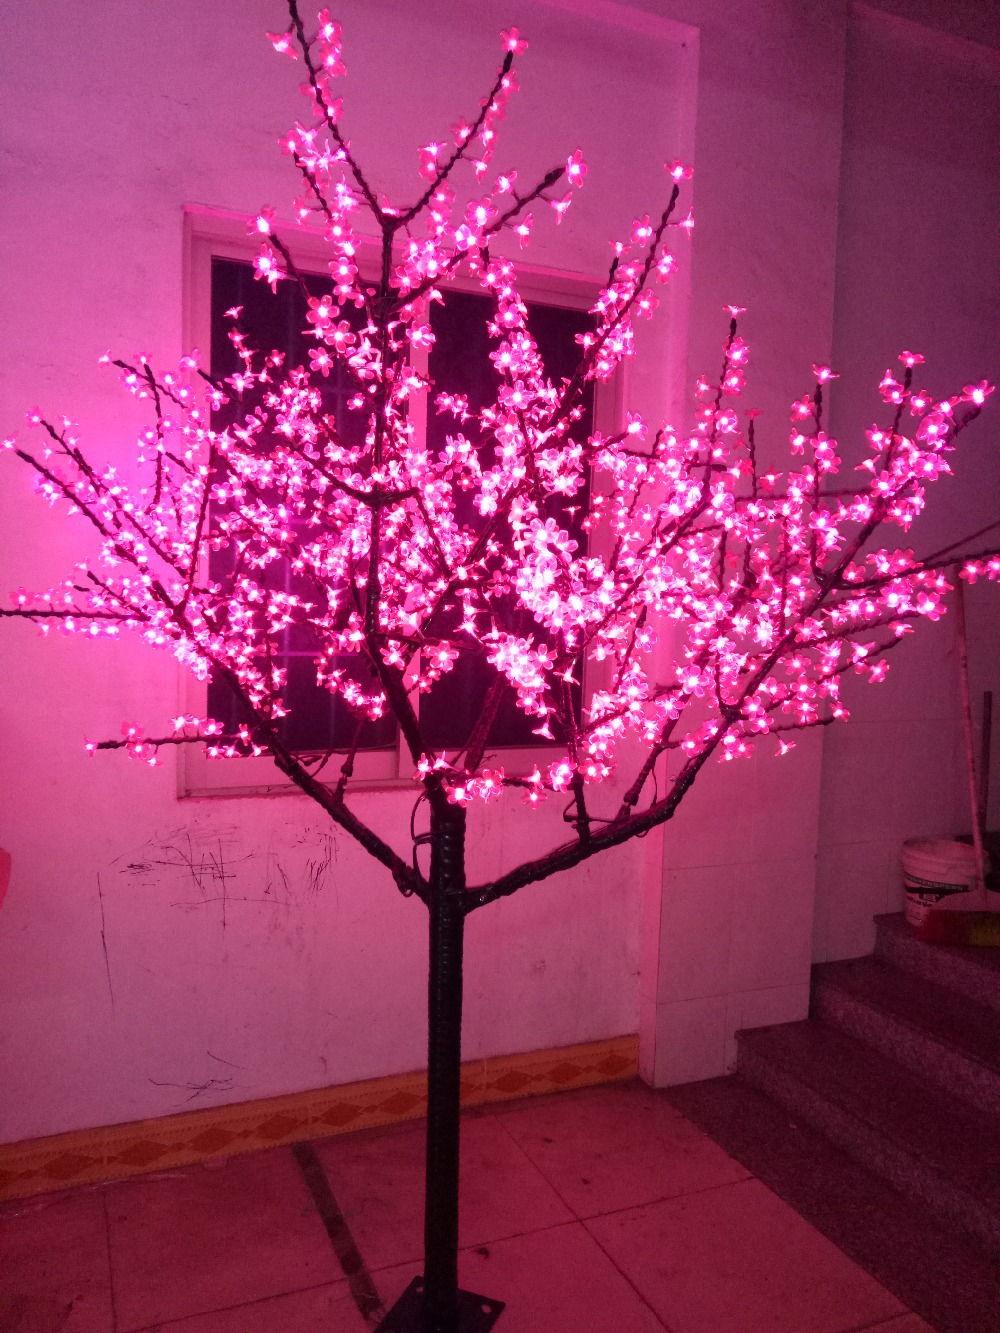 Free Ship LED Cherry Blossom Tree Light Christmas Holiday Party Wedding Home Tree Light 1152pcs LEDs 6.6ft Pink Waterproof